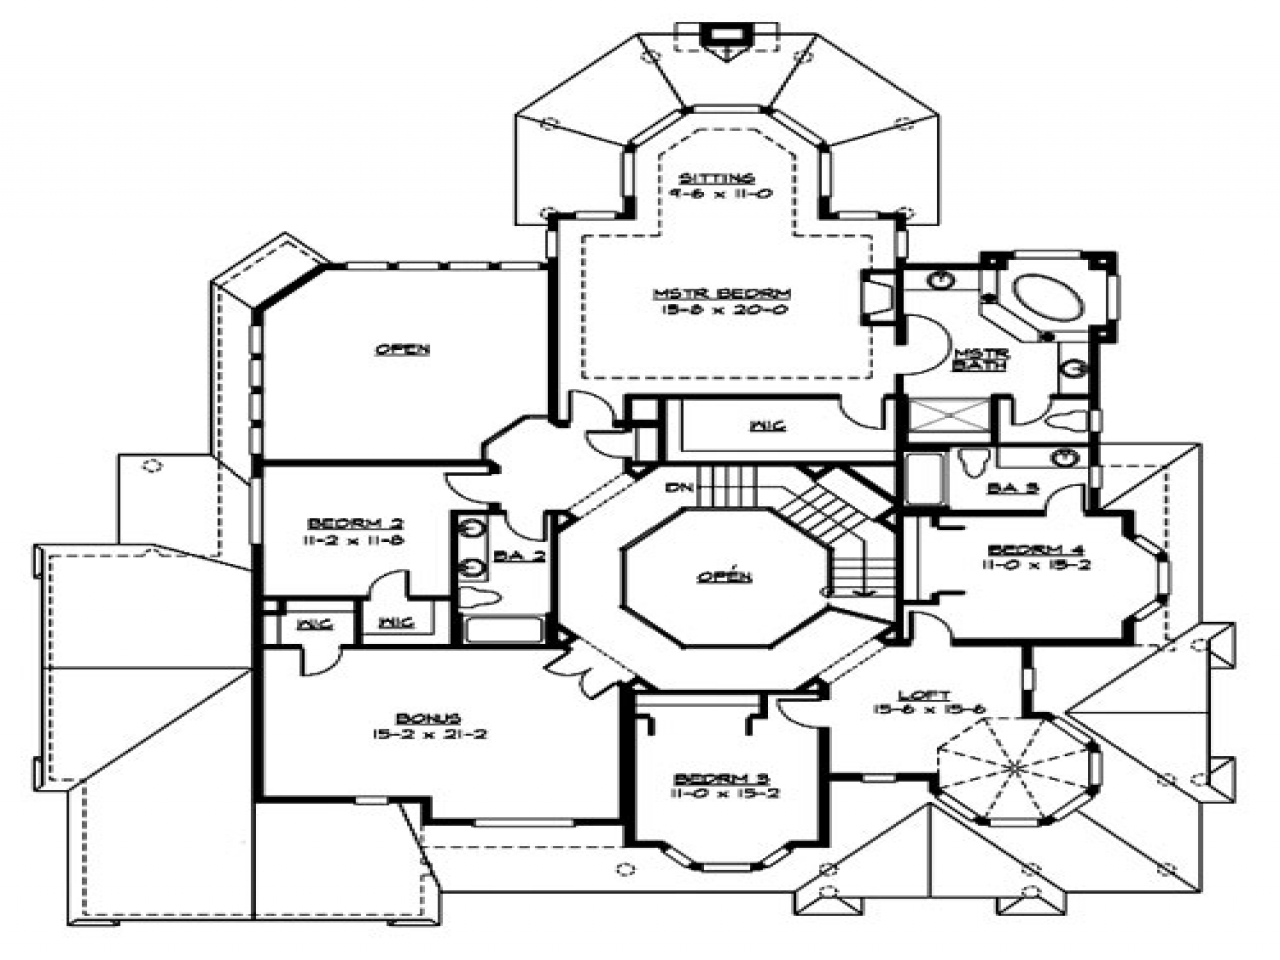 Authentic victorian house plans victorian house floor for Victorian style floor plans